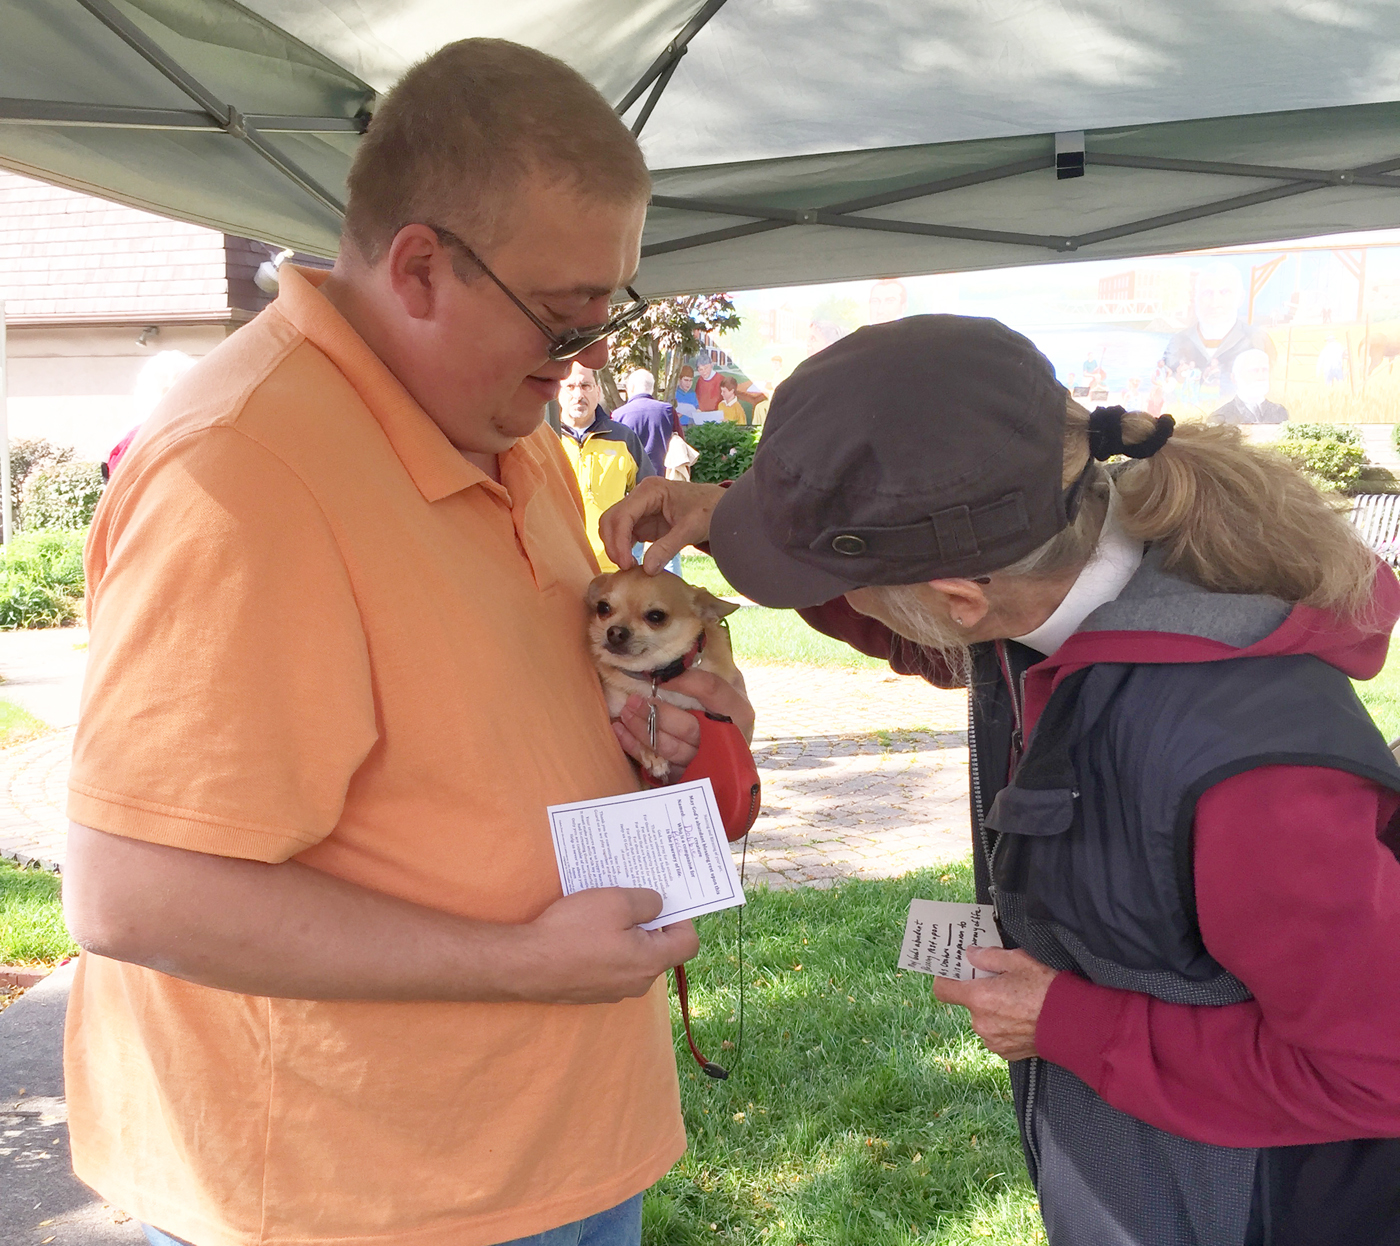 Bruce Boehl and his dog Dobbie celebrated last year's Blessing of the Animals hosted by St. Luke's Episcopal Church and look forward to this year's event on October 8. Dobbie received his own individual blessing and Bruce received a blessing card to commemorate the event. Provided photo